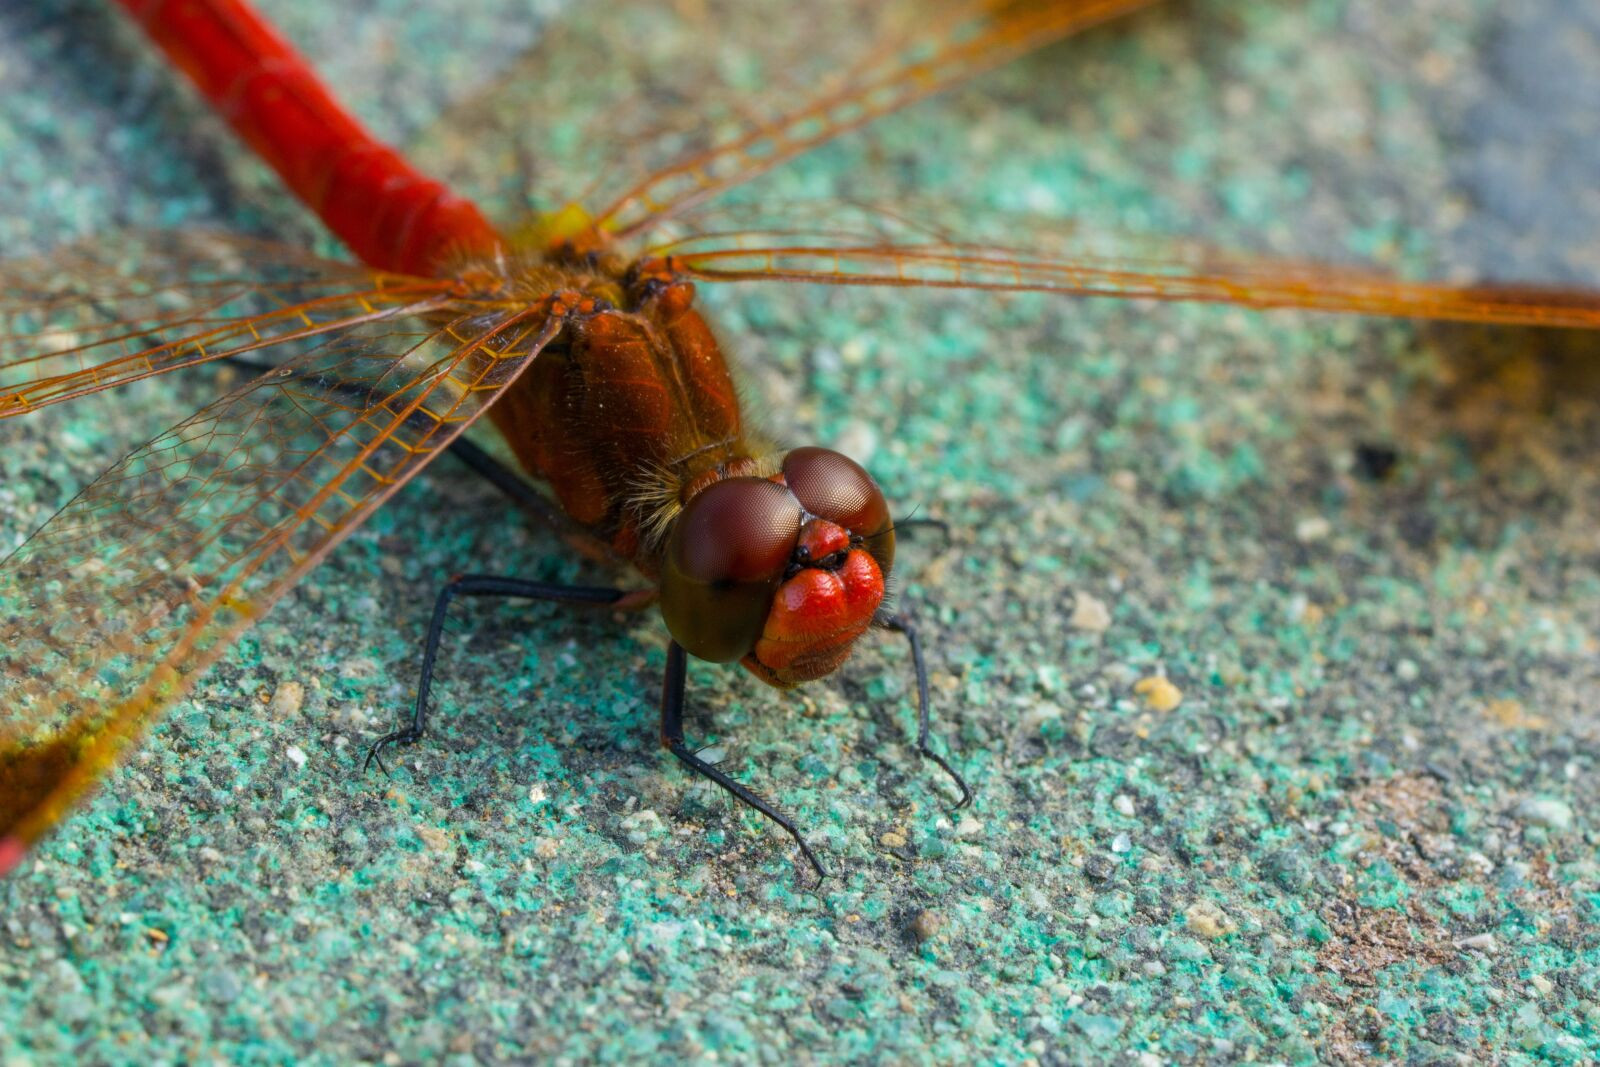 """Sony a6000 sample photo. """"Dragonfly, insects, macro"""" photography"""